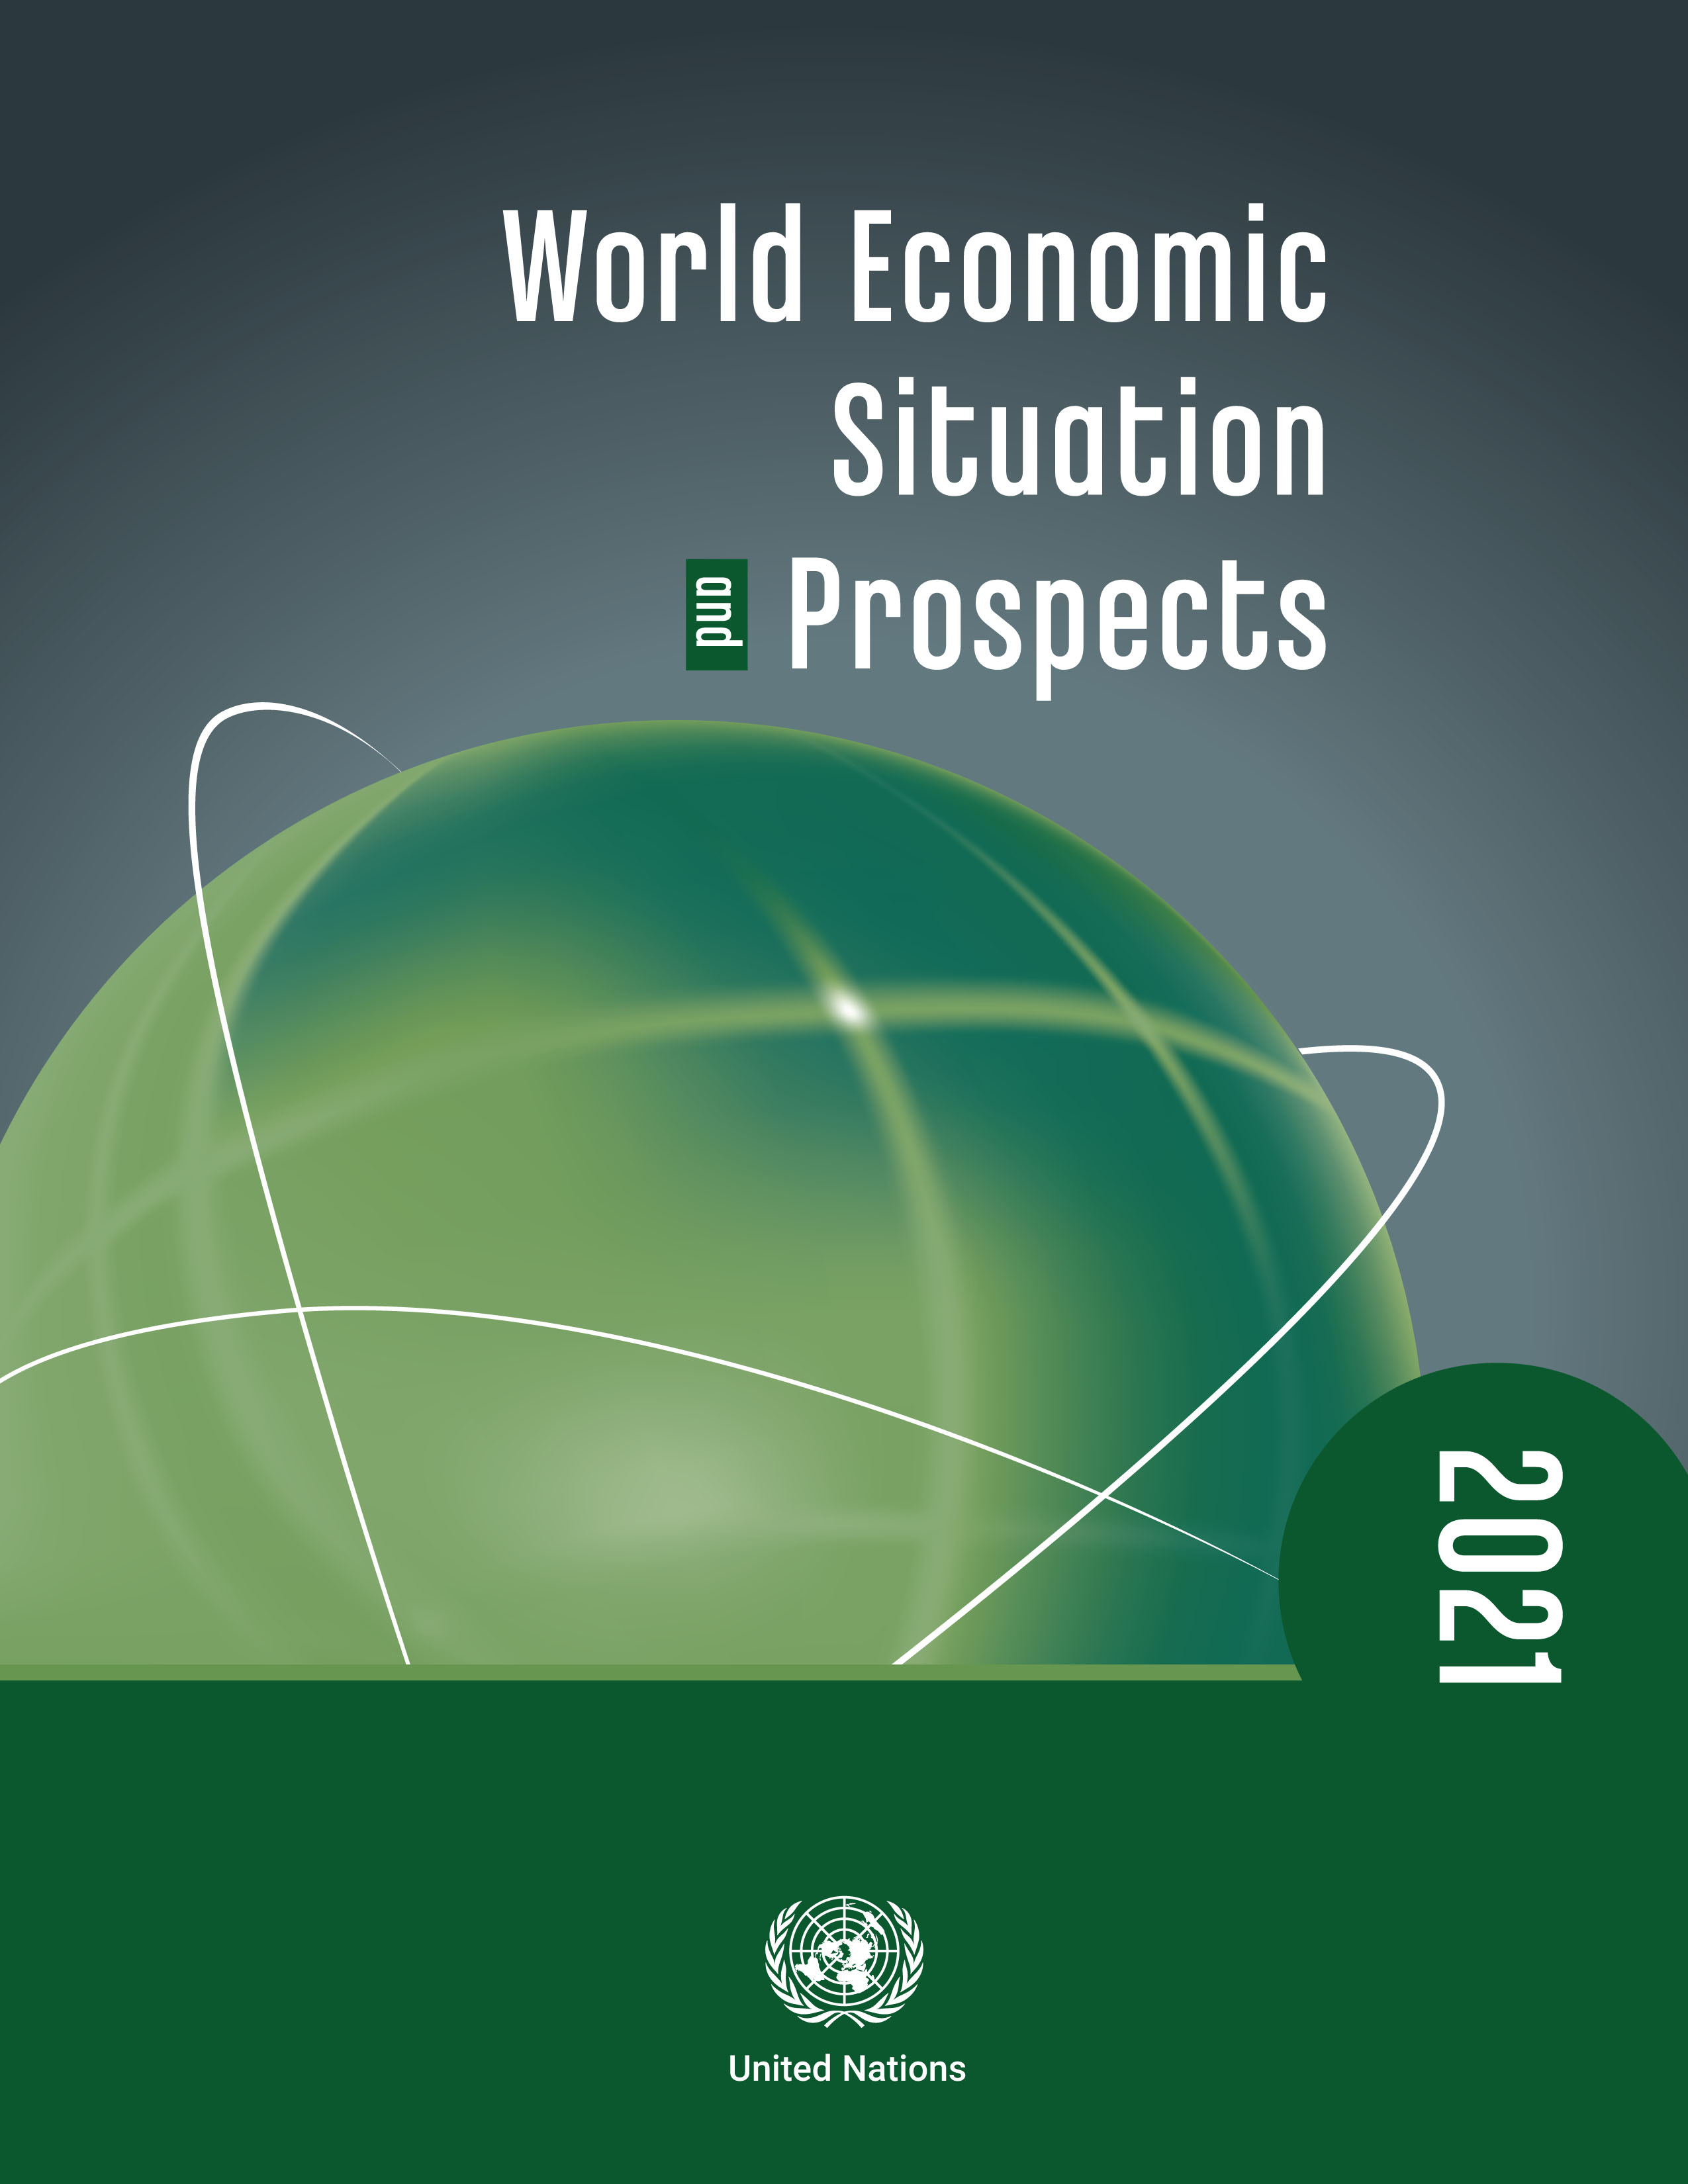 WORLD ECON SITUAT PROSPECTS 2021